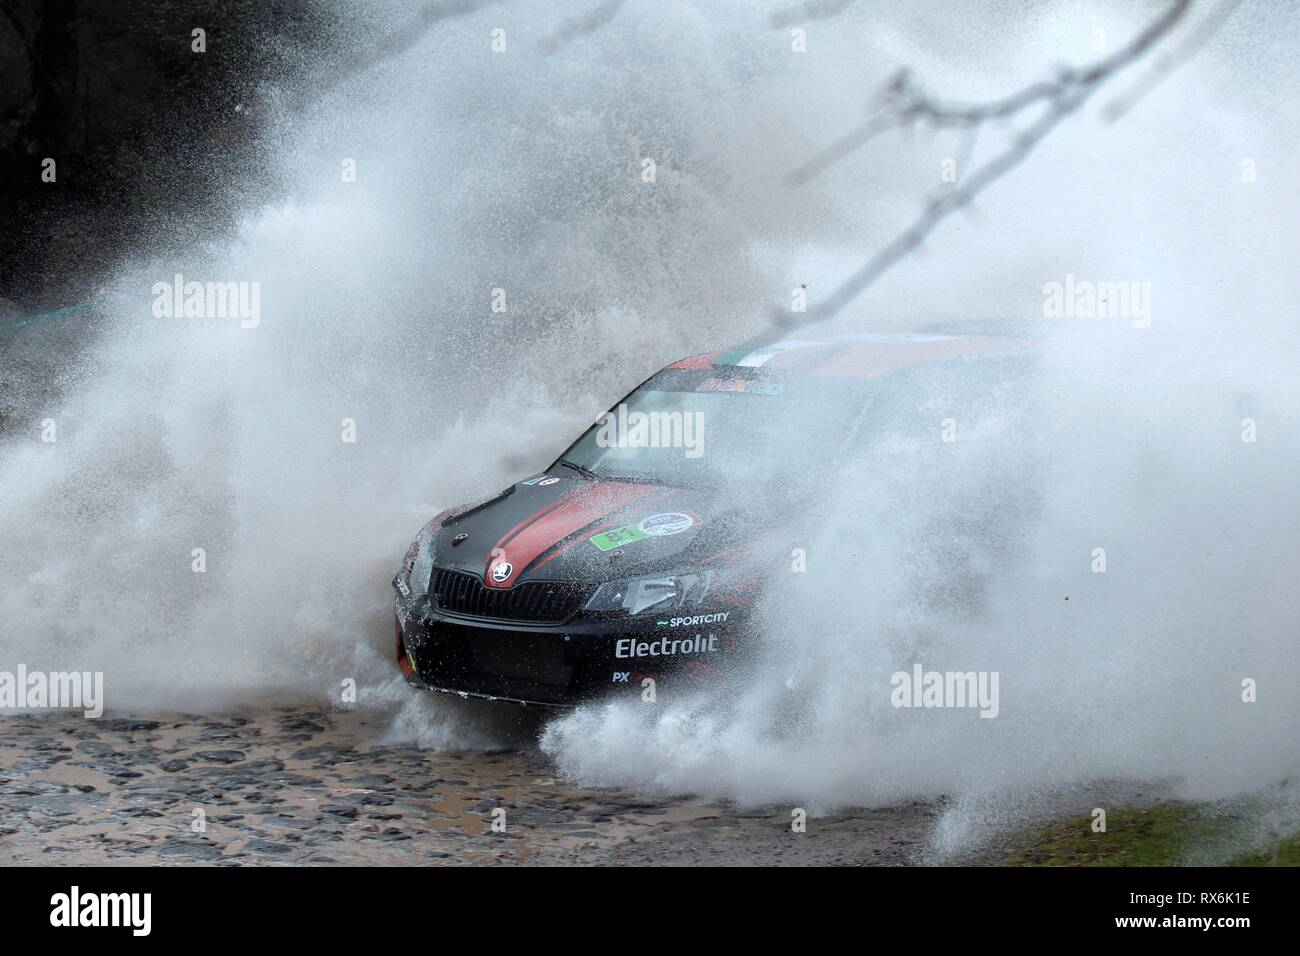 Mexico City, Mexico. 09th Mar, 2019. Mexican driver Ricardo Trivino and Spanish co-pilot Marc Marti drive their Skoda Fabia R5during the first stage of the Rally Guanajuato Mexico, Leon, Mexico, 08 March 2019. Credit: Francisco Guasco/EFE/Alamy Live News - Stock Image